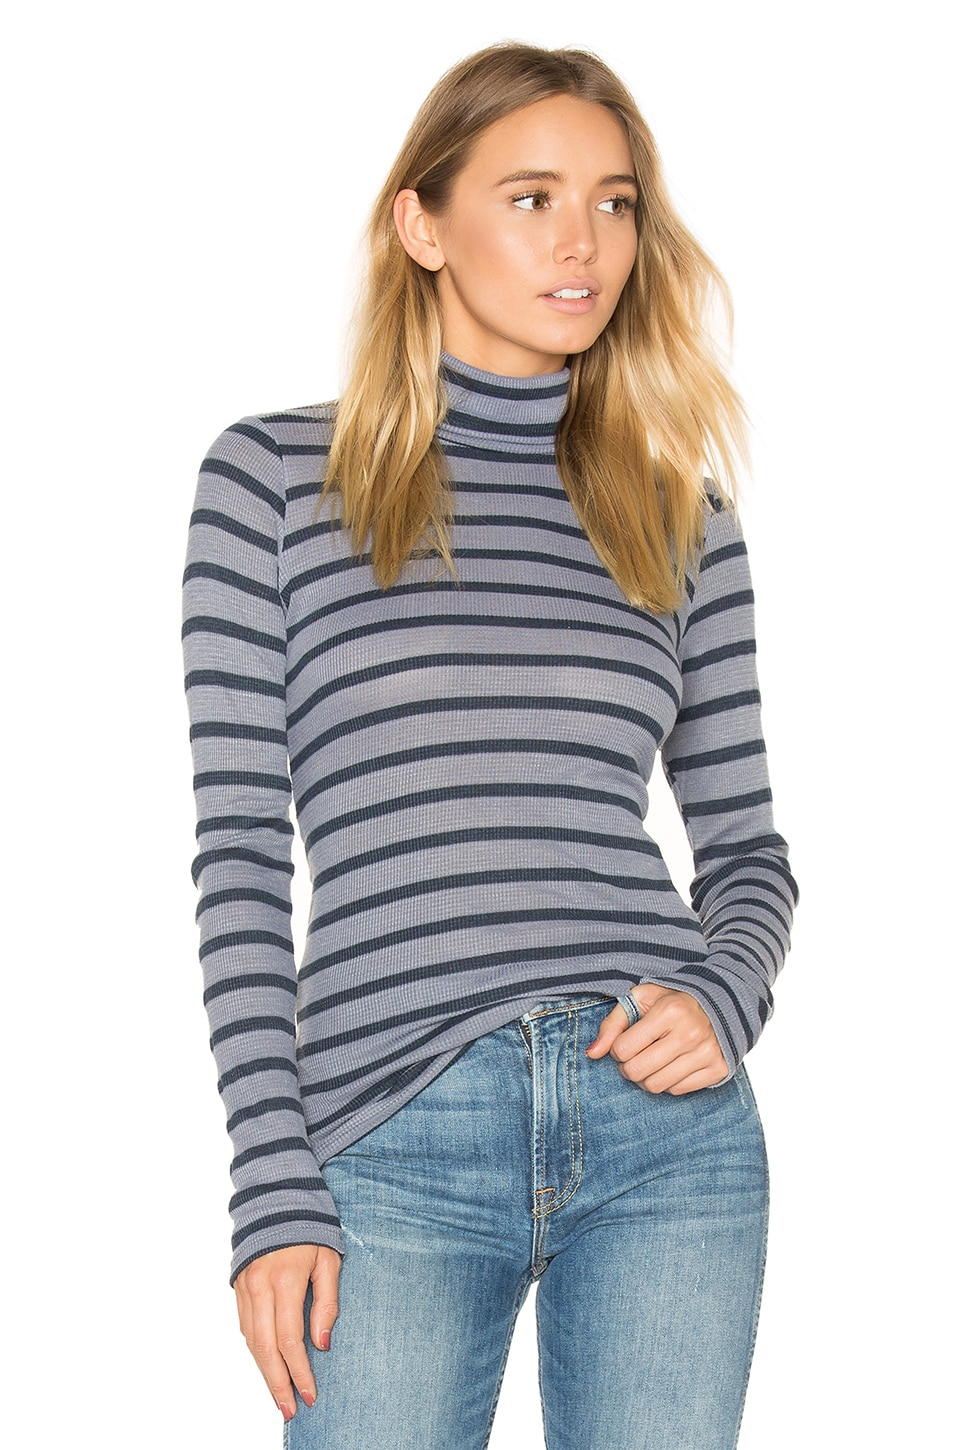 Stateside Stripe Thermal Turtleneck Sweater in Navy & Charcoal